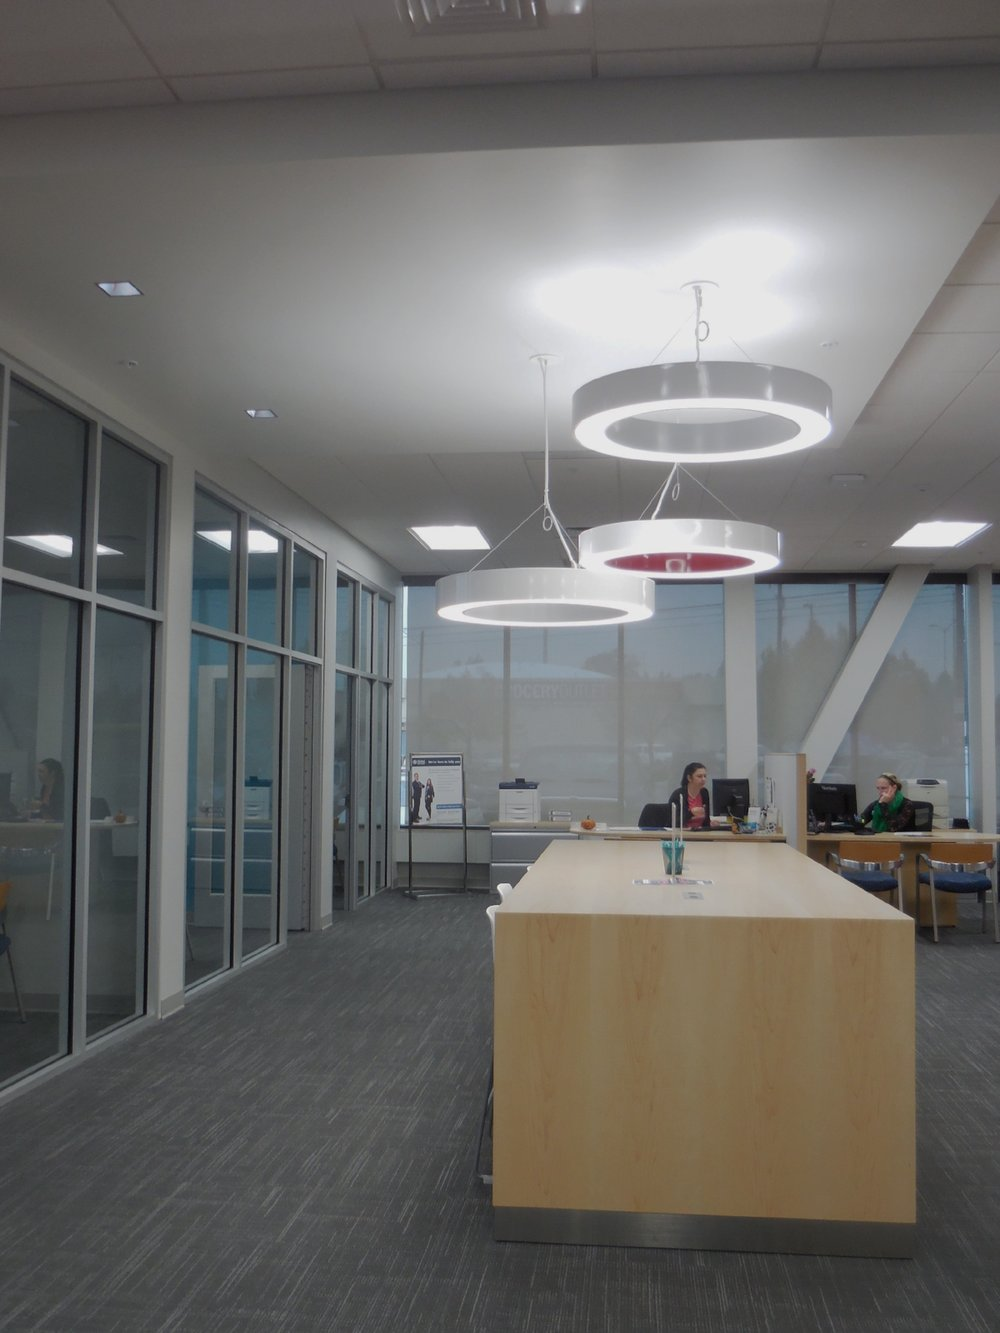 Lighting / Financial / Branch design / Storefront / Meeting table